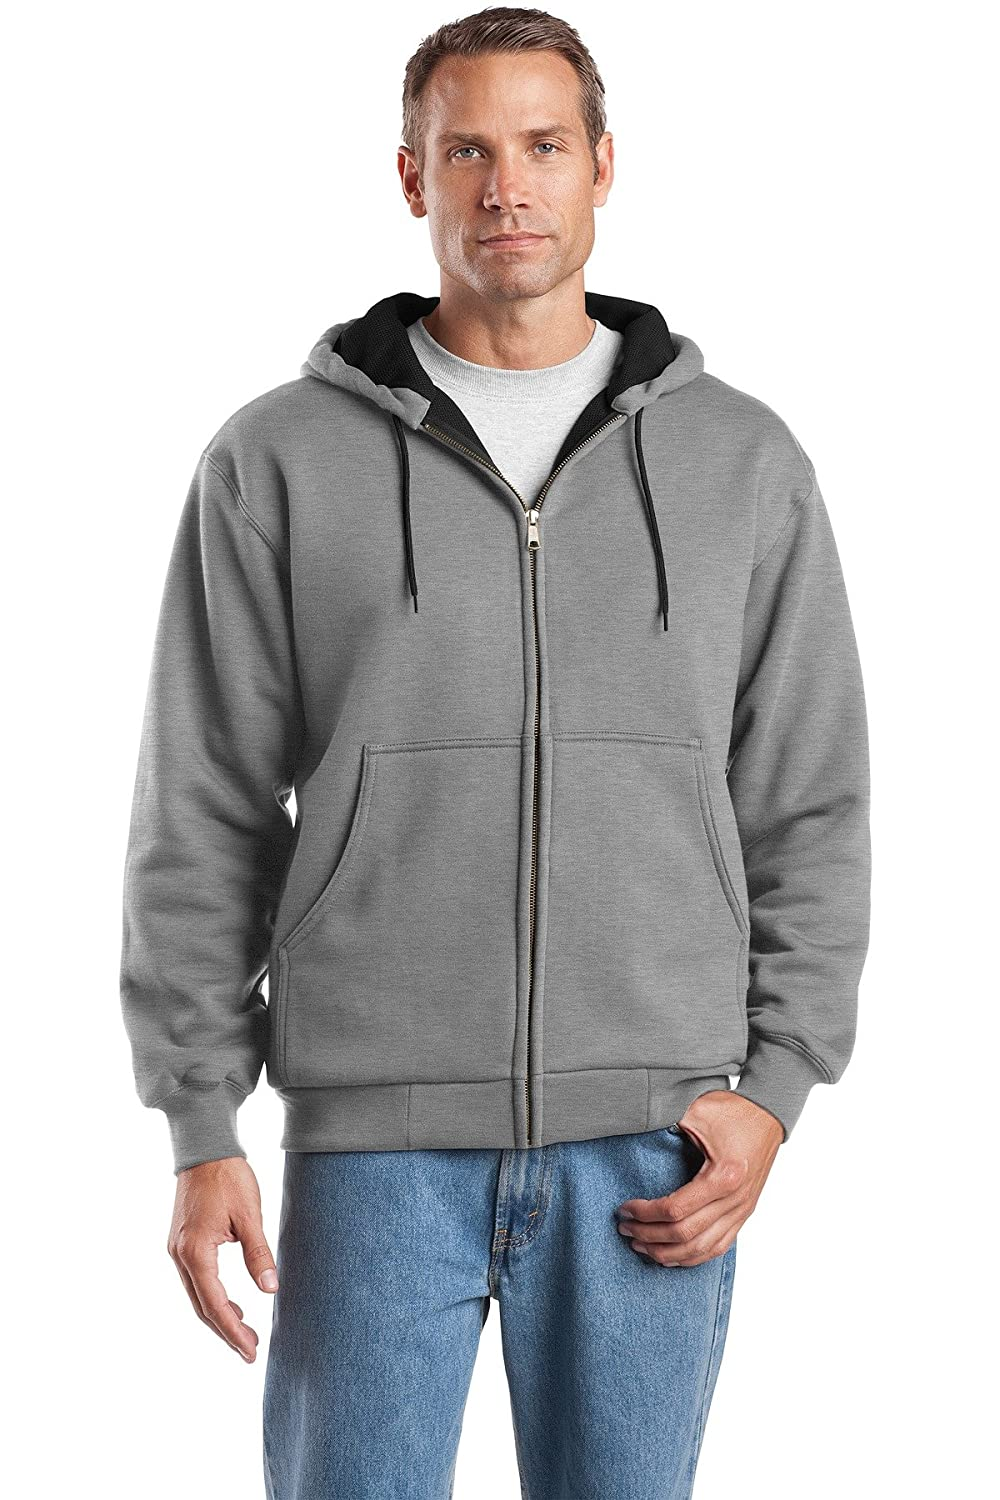 Cornerstone Herren Heavyweight Full Zip Sweatshirt mit Kapuze